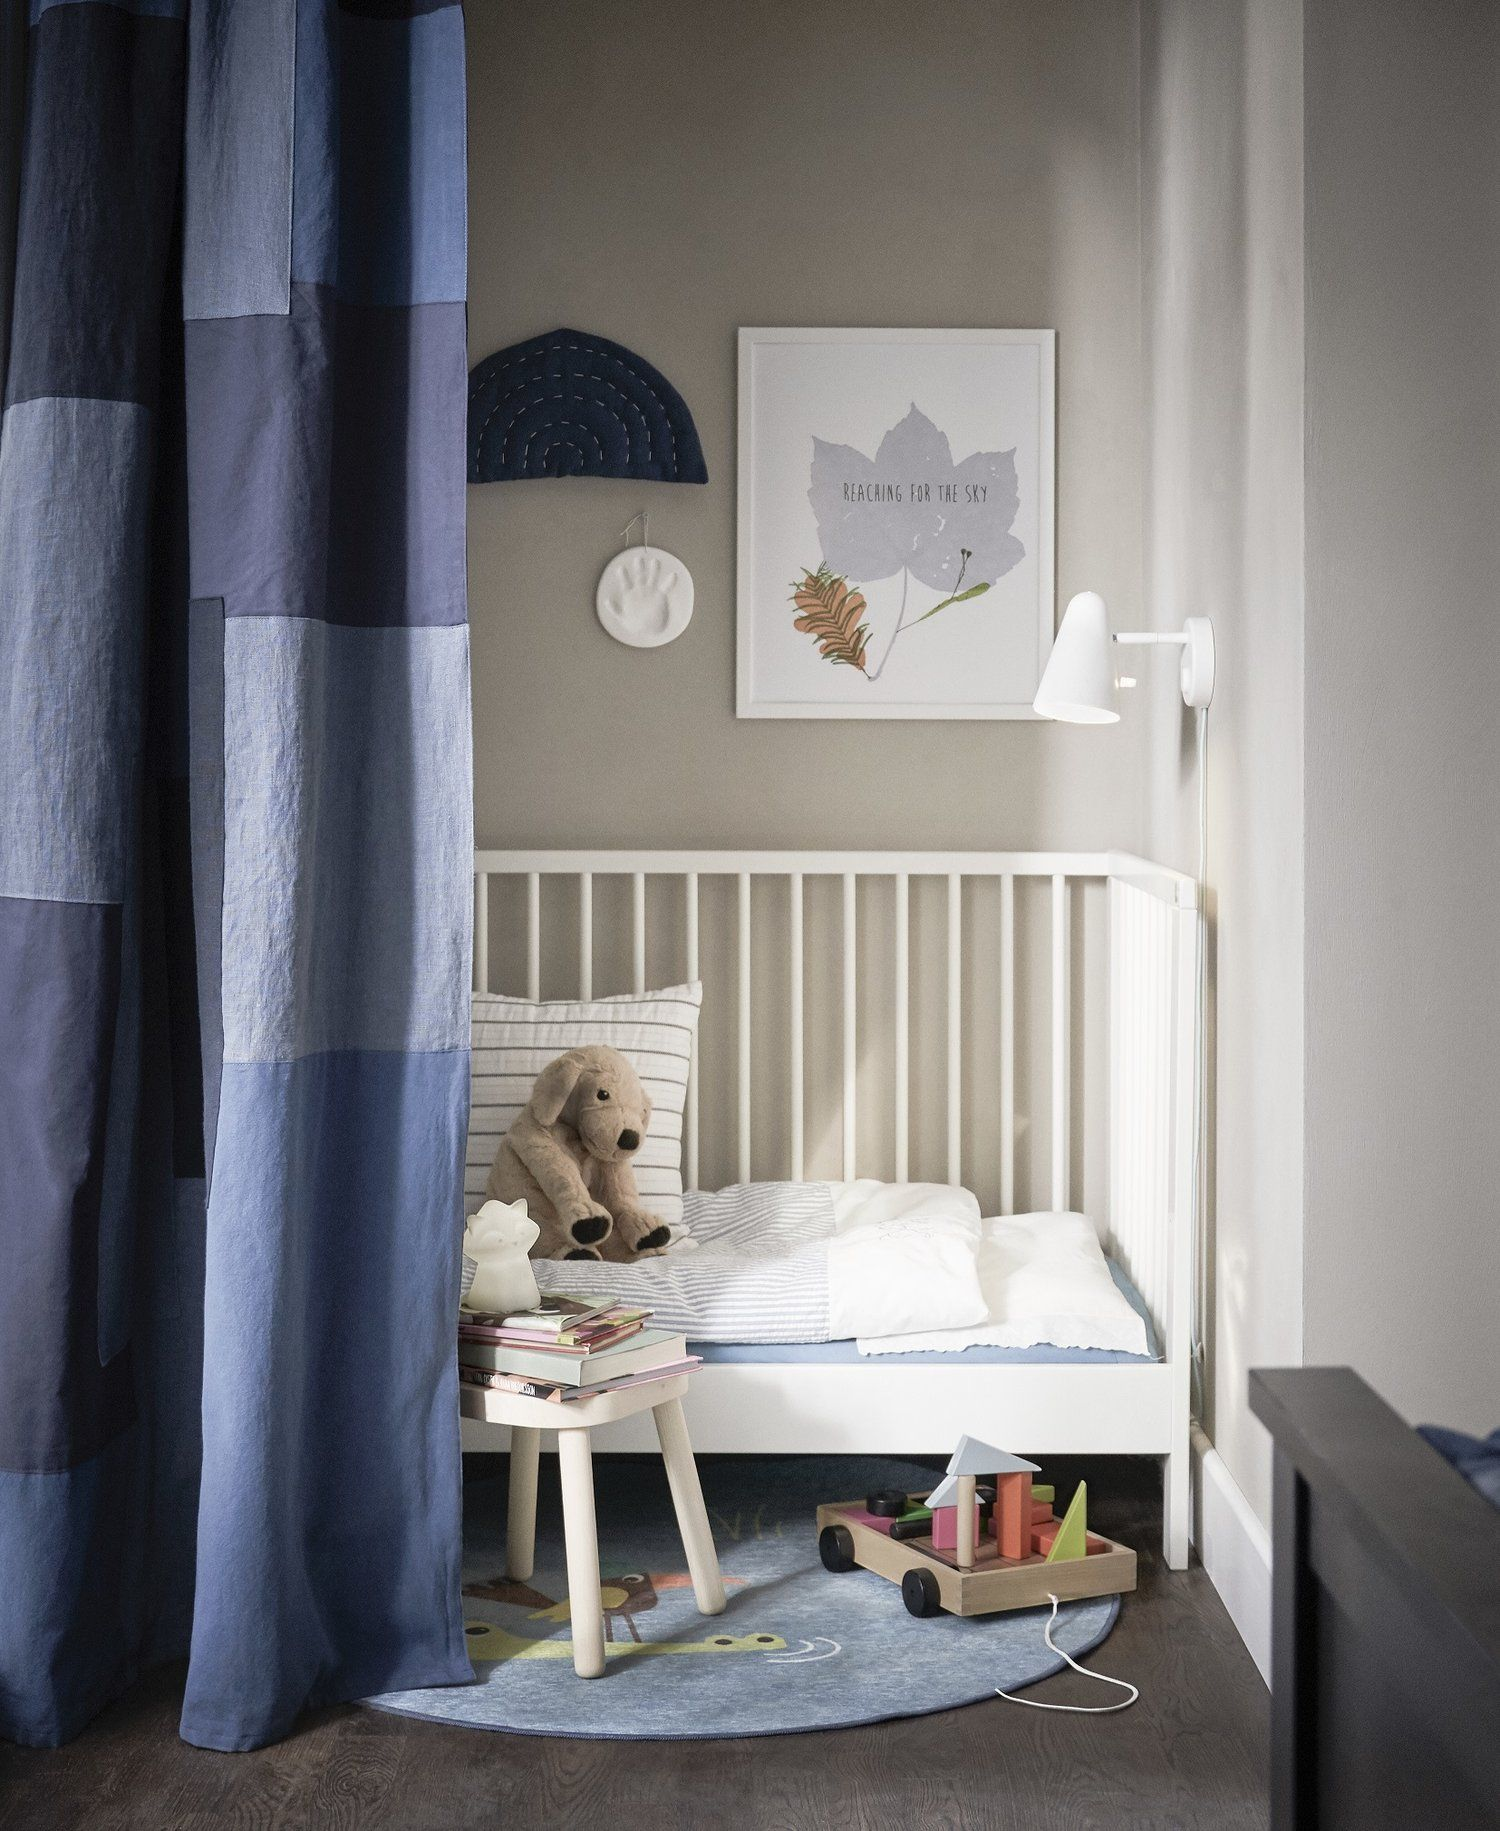 Ikea Catalog 2020 Get Ready For A Fresh Start The Nordroom Kinderkamer Baby